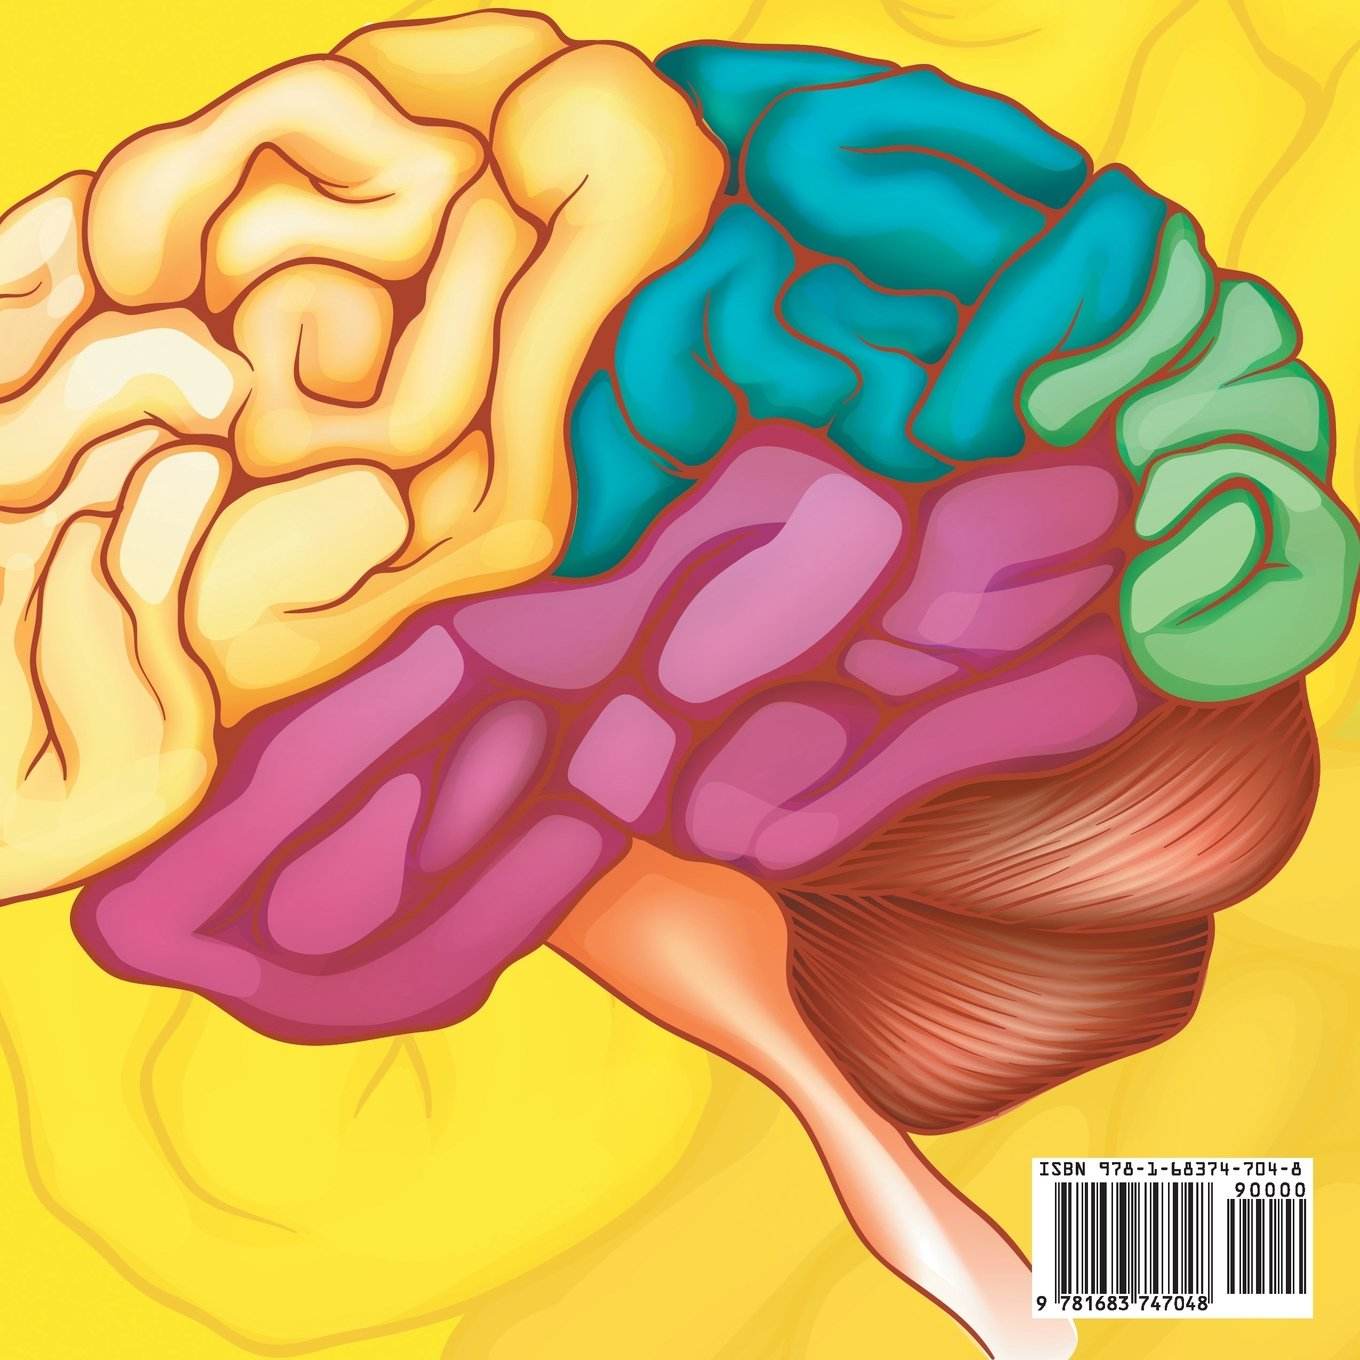 Think Tank The Human Brain And How It Works Anatomy For Kids